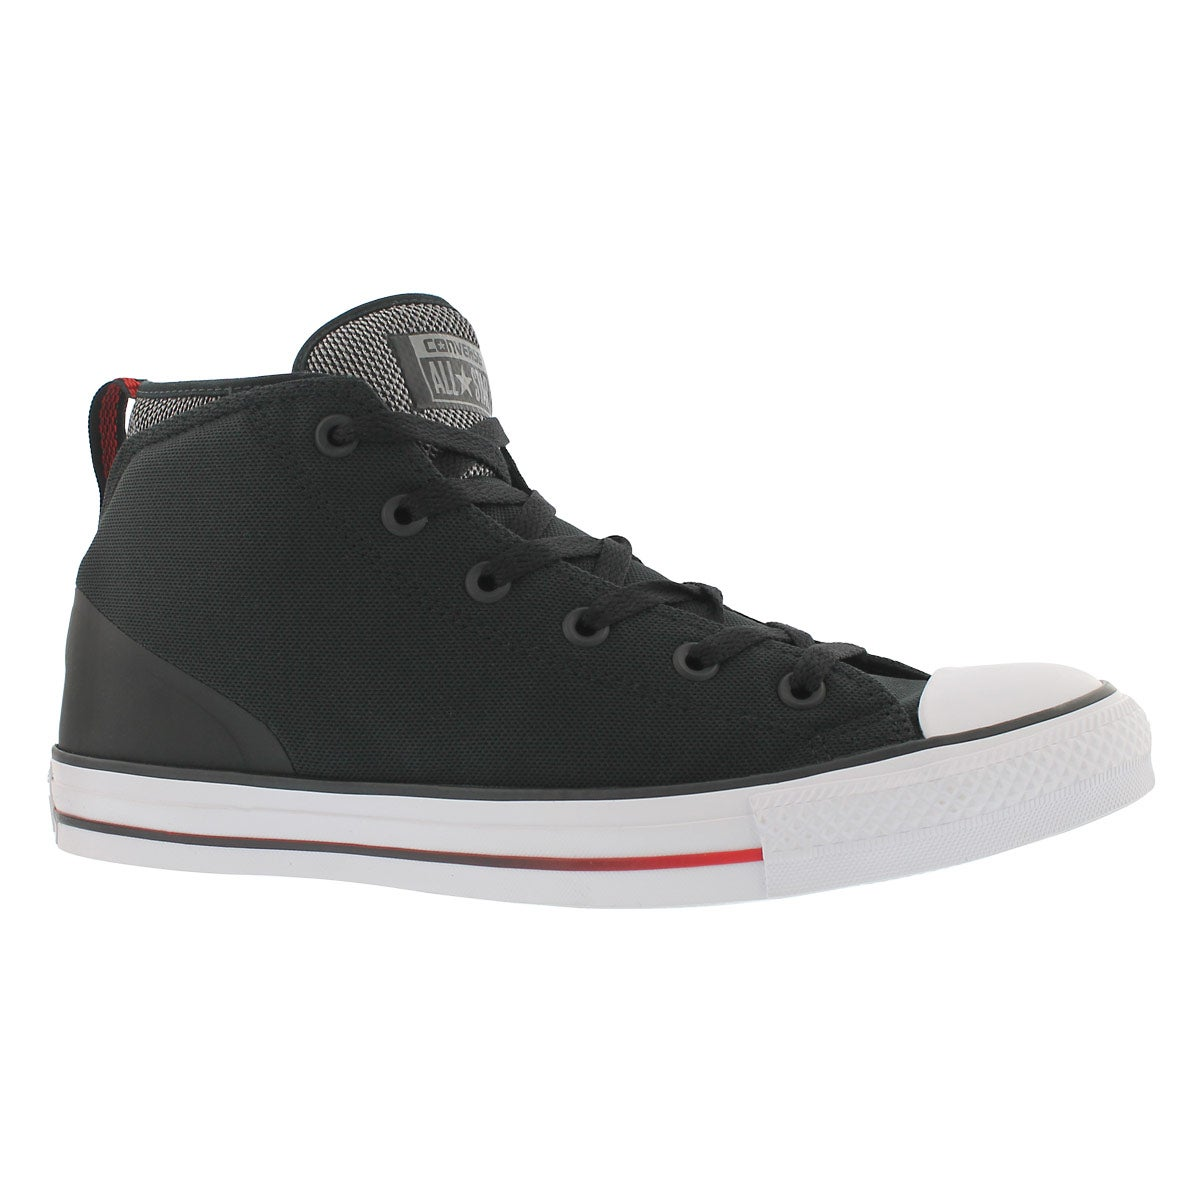 Men's CT ALL STAR SYDE STREET black/white sneakers